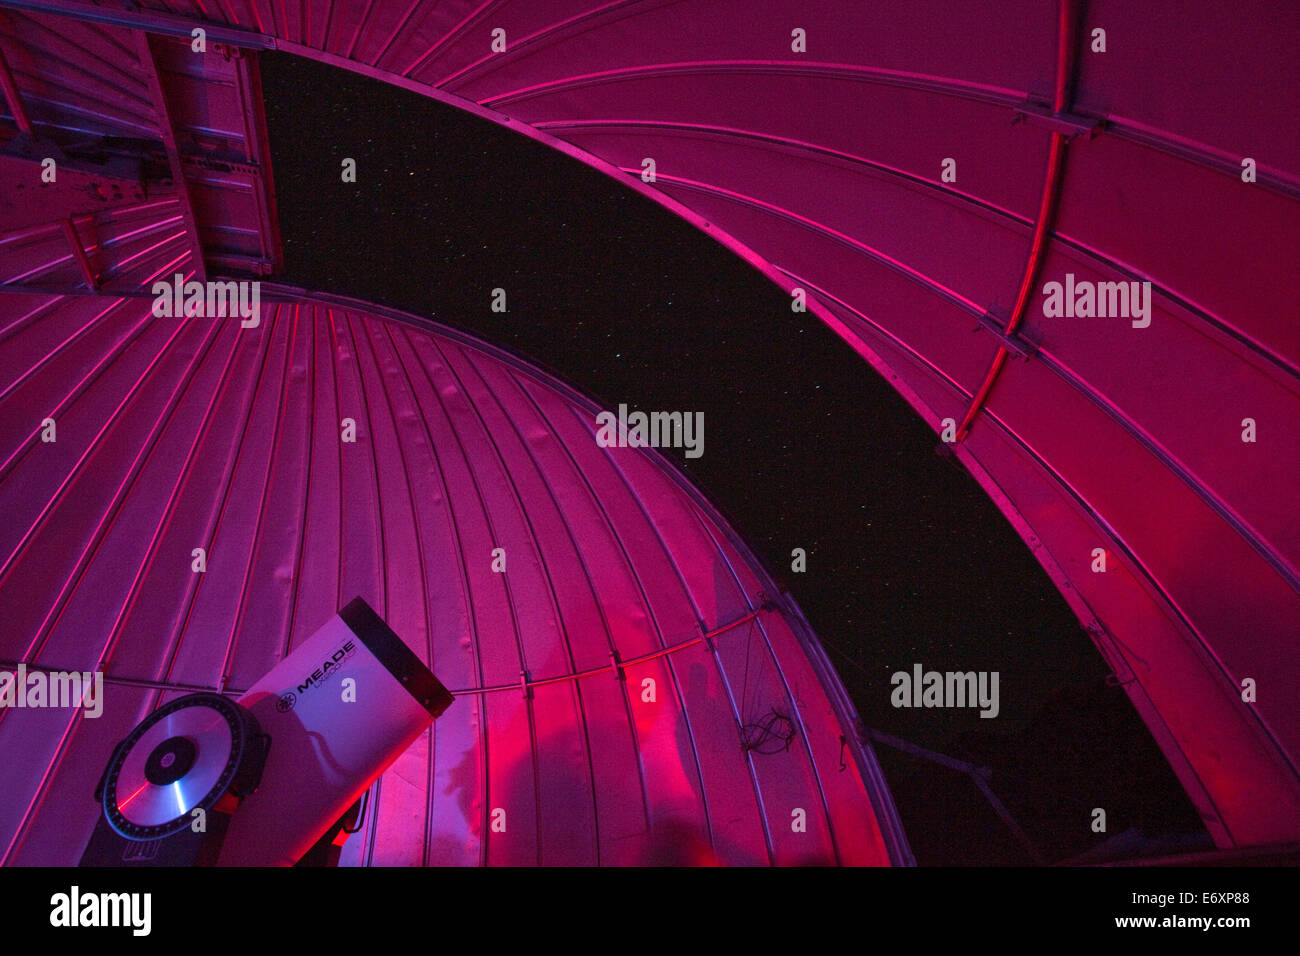 Telescope in the Mamalluca Observatory and stars in clear night sky, near Coquimbo, Coquimbo, Chile - Stock Image